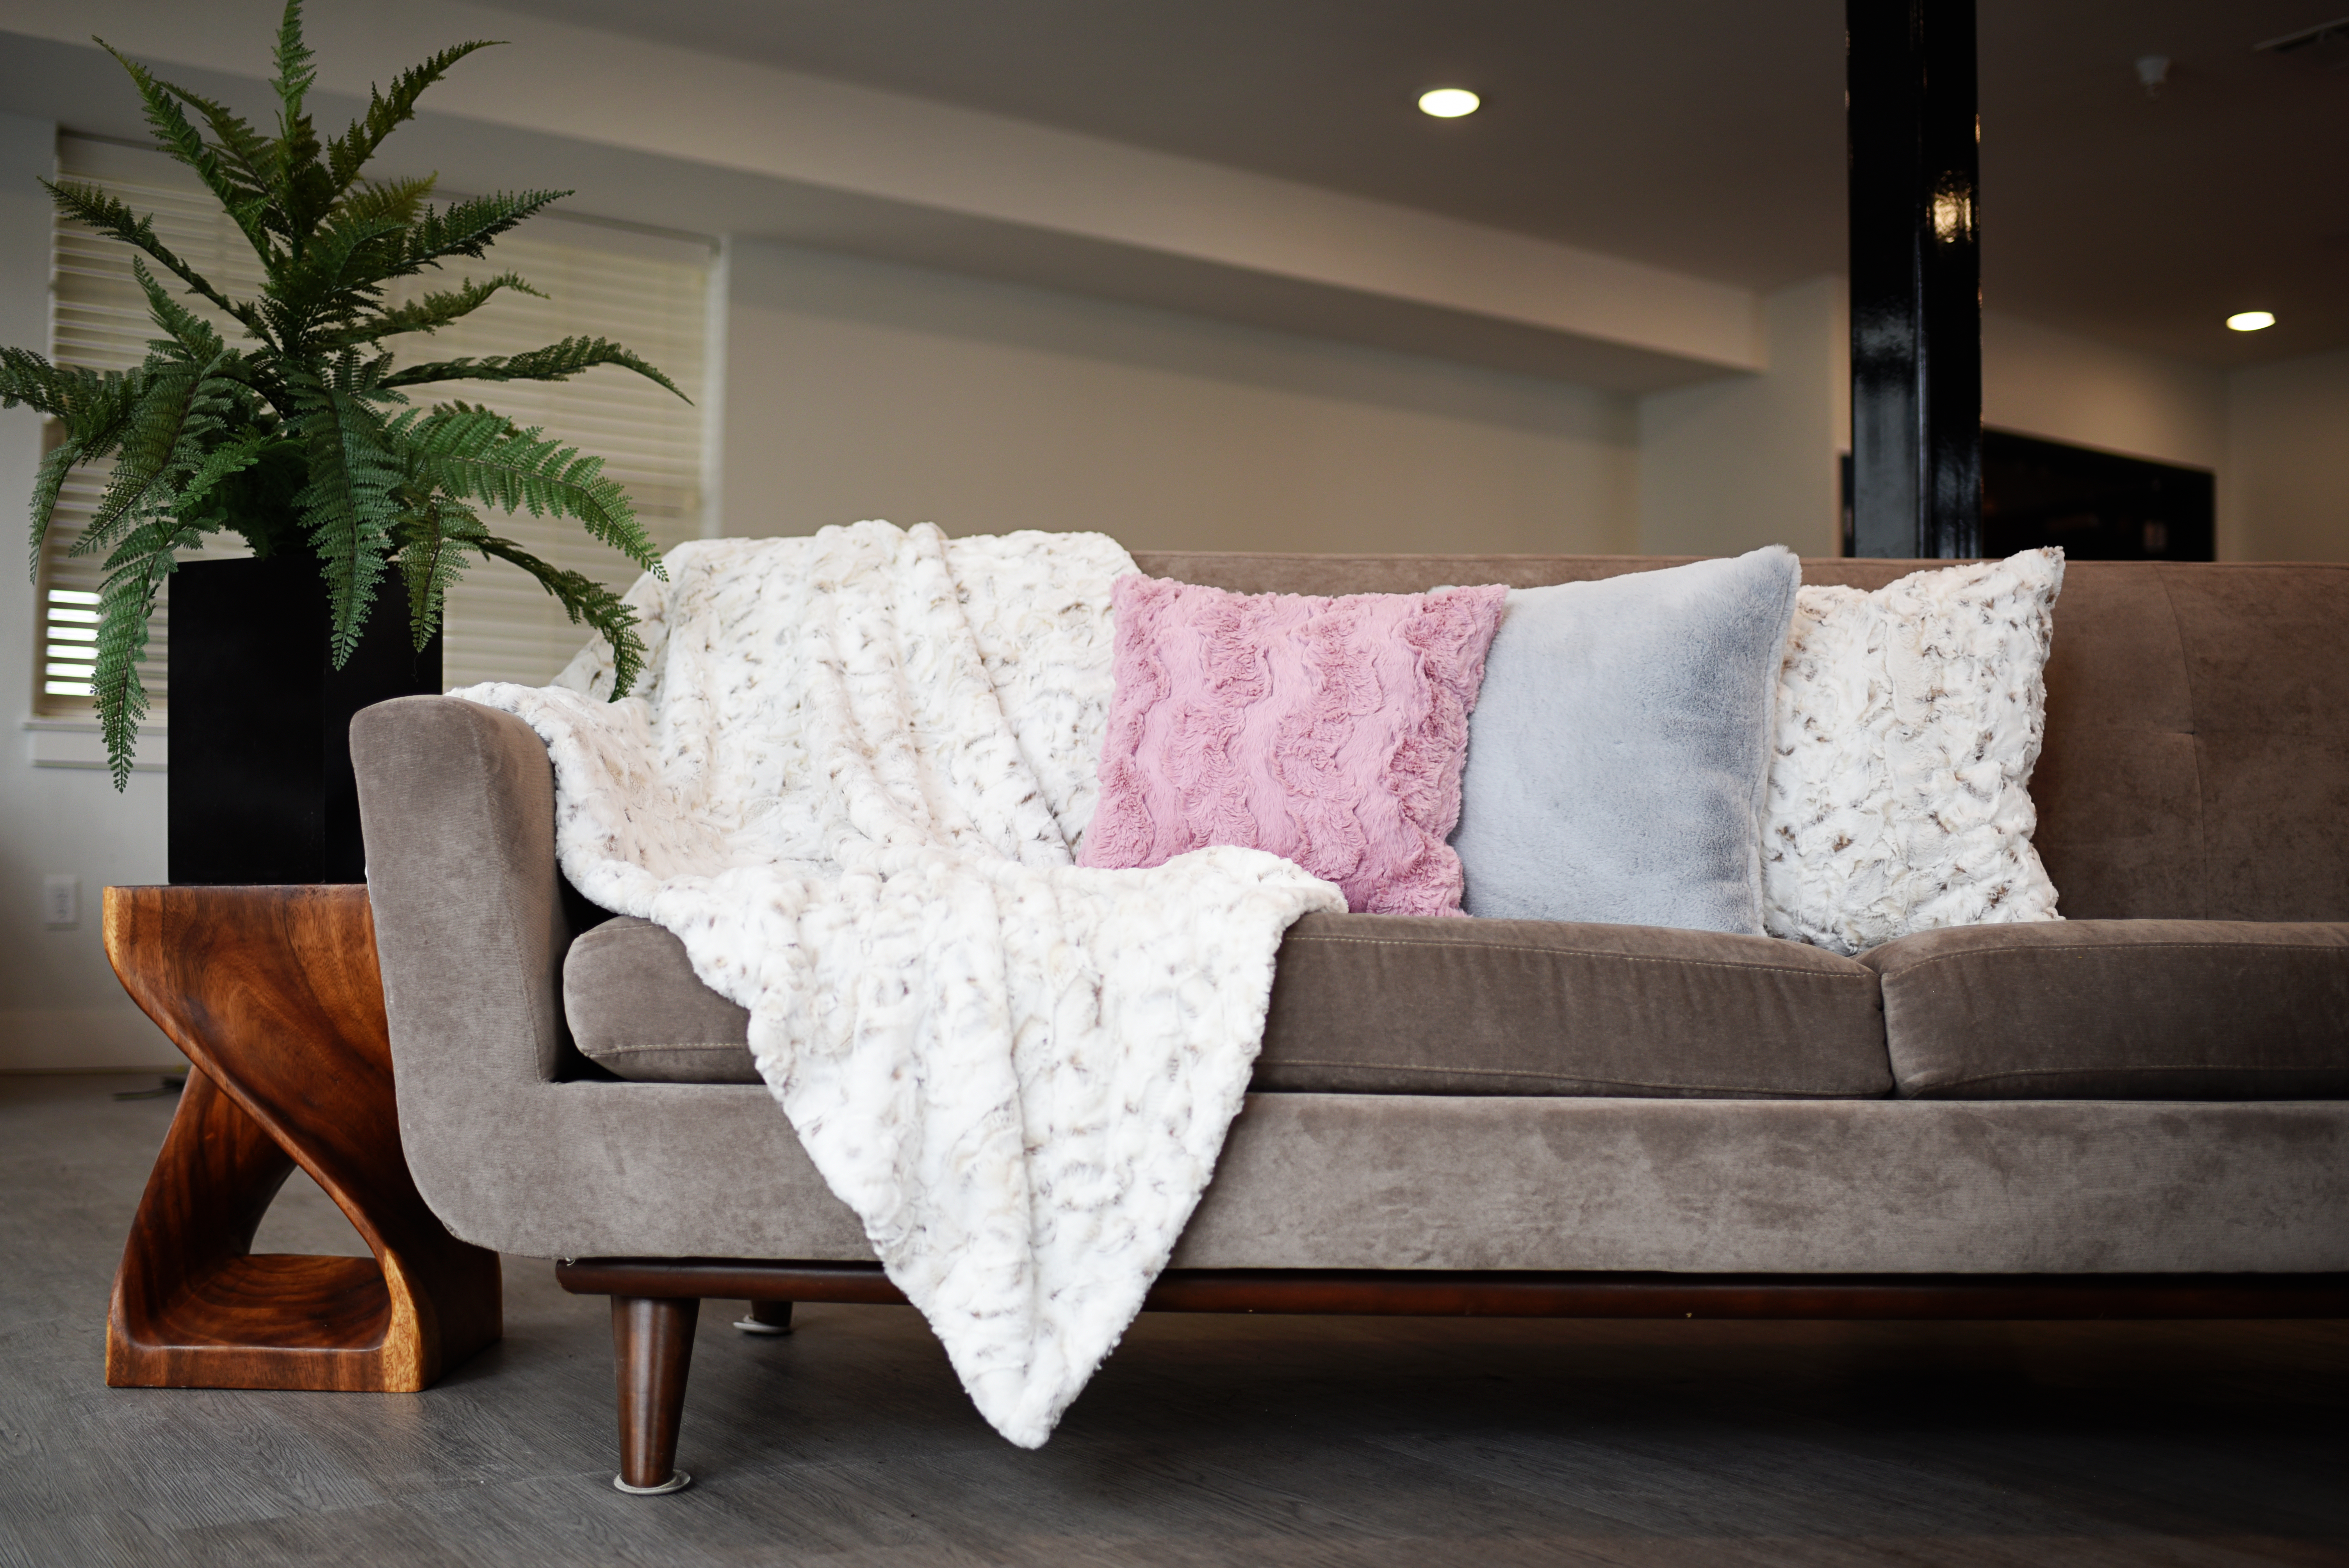 image of minky pillows & throws